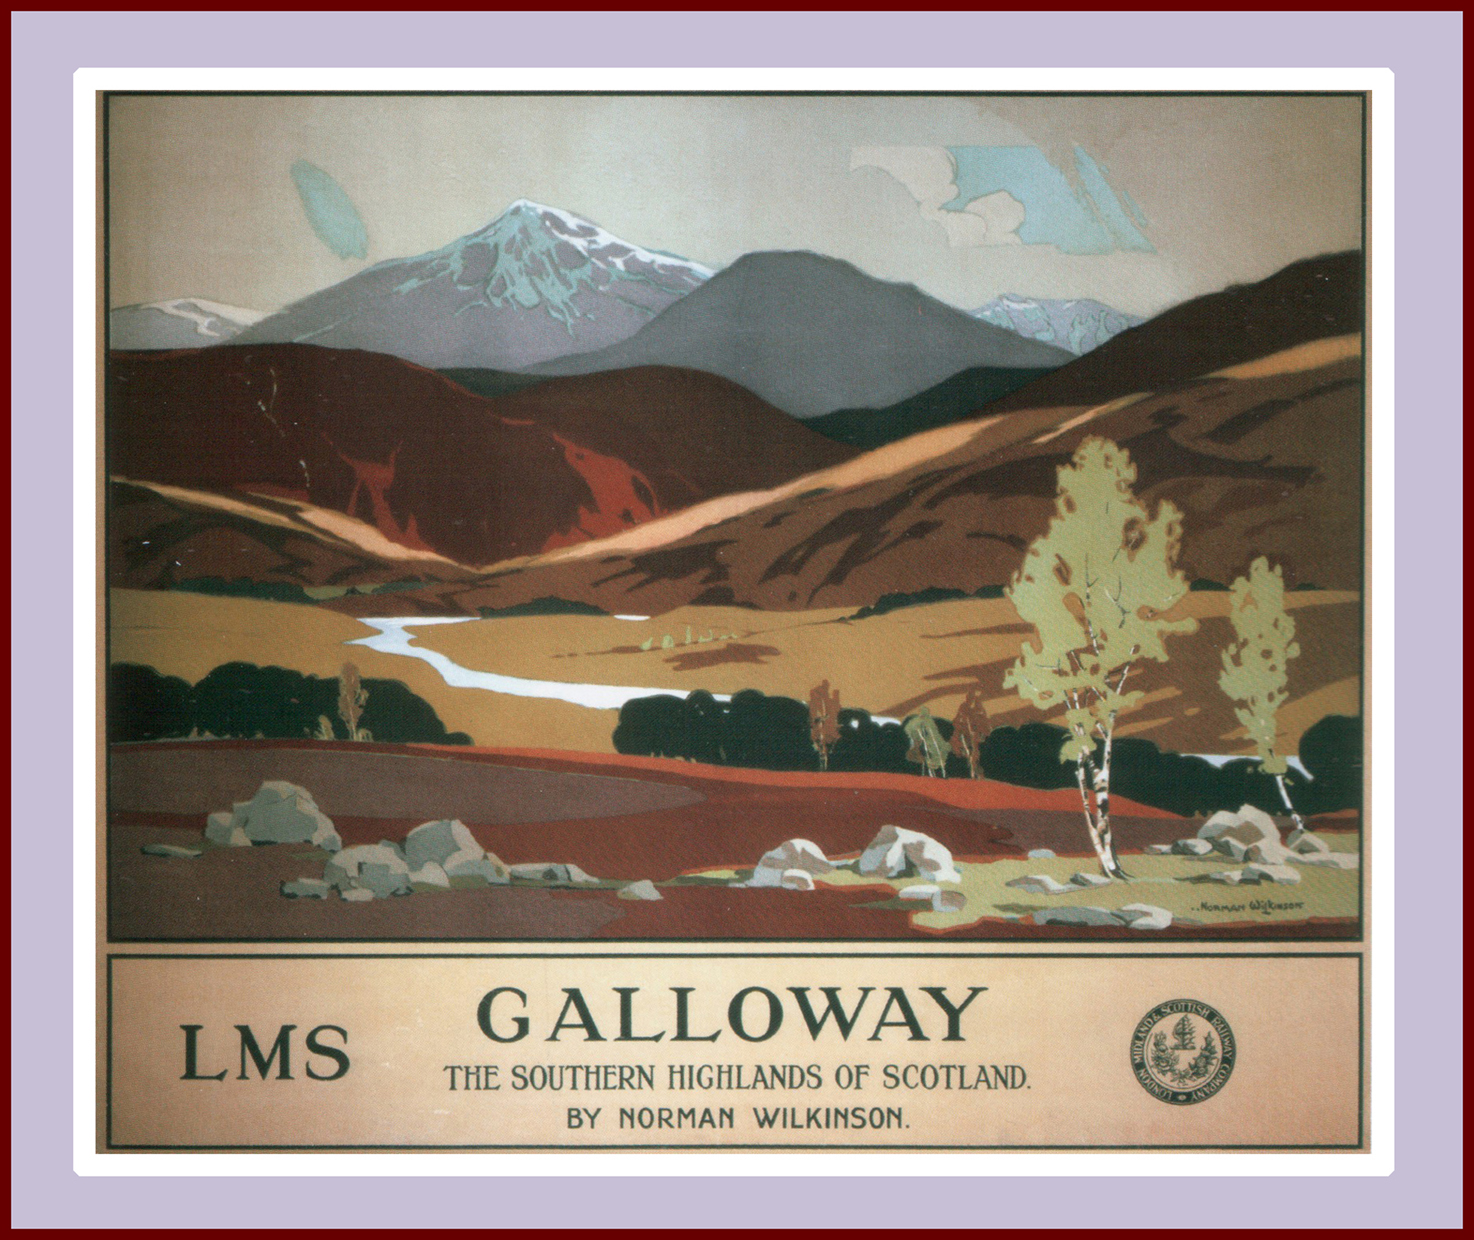 Galloway, Scotland, Norman Wilkinson